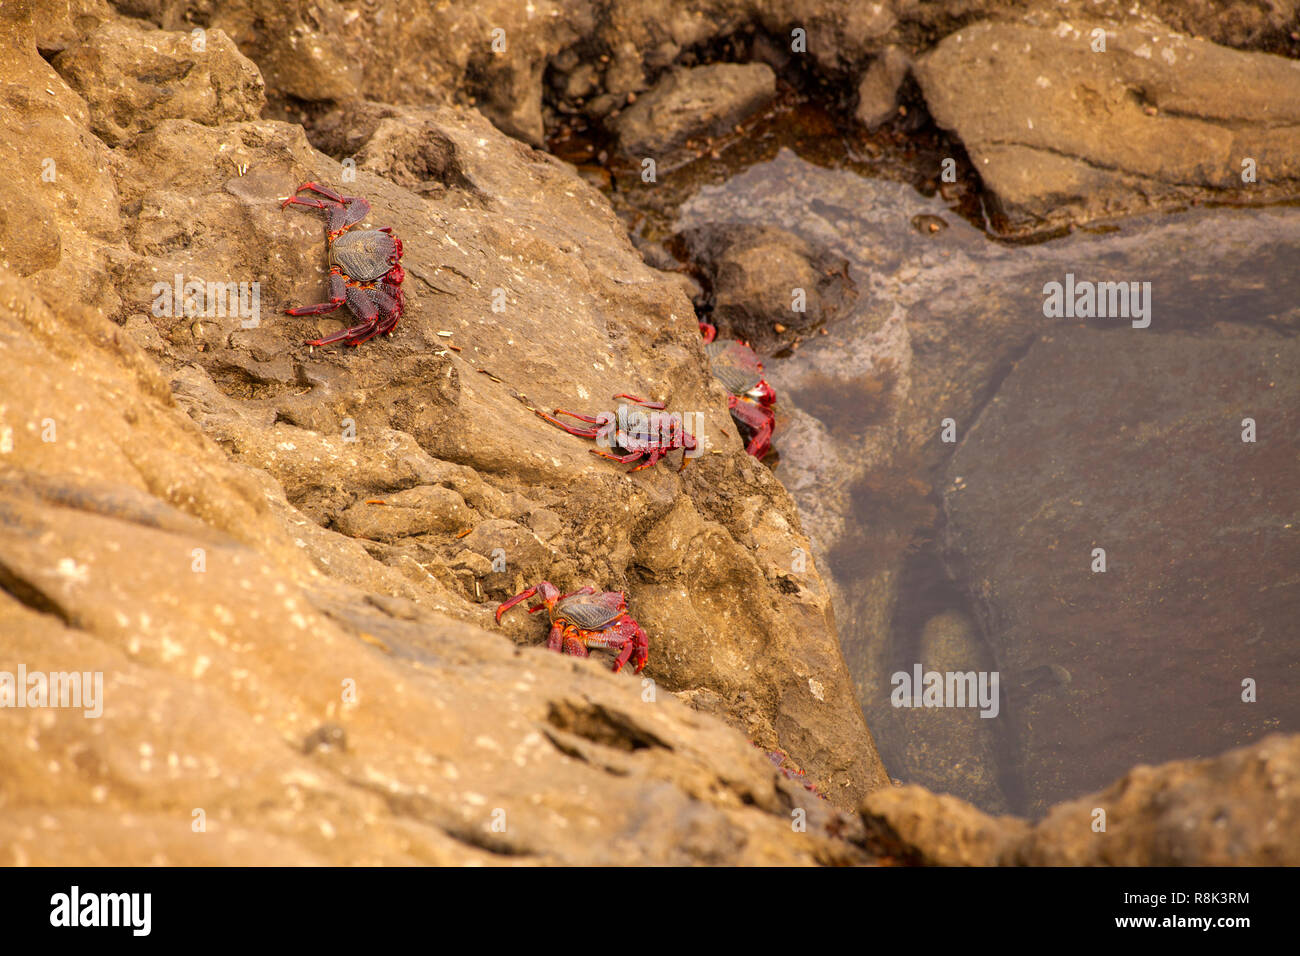 Fauna of Gran Canaria   - rock crabs Grapsus adscensionis by the shore, Banaderos area Stock Photo